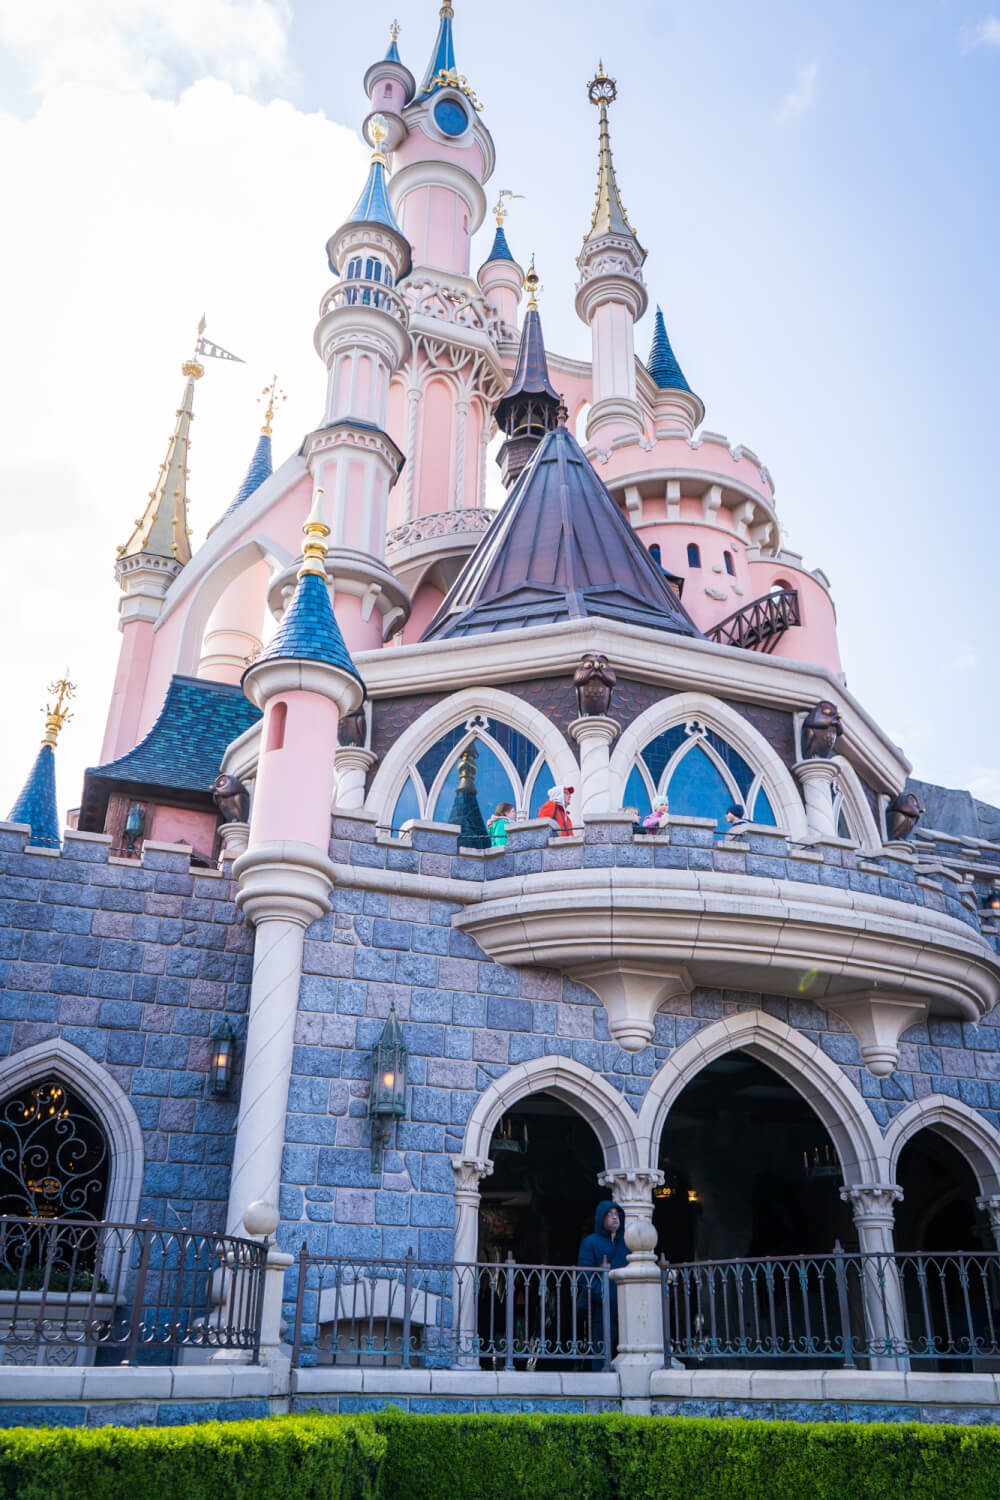 Exterior of the Disneyland Paris castle at Disneyland Park in Marne la Vallee, France